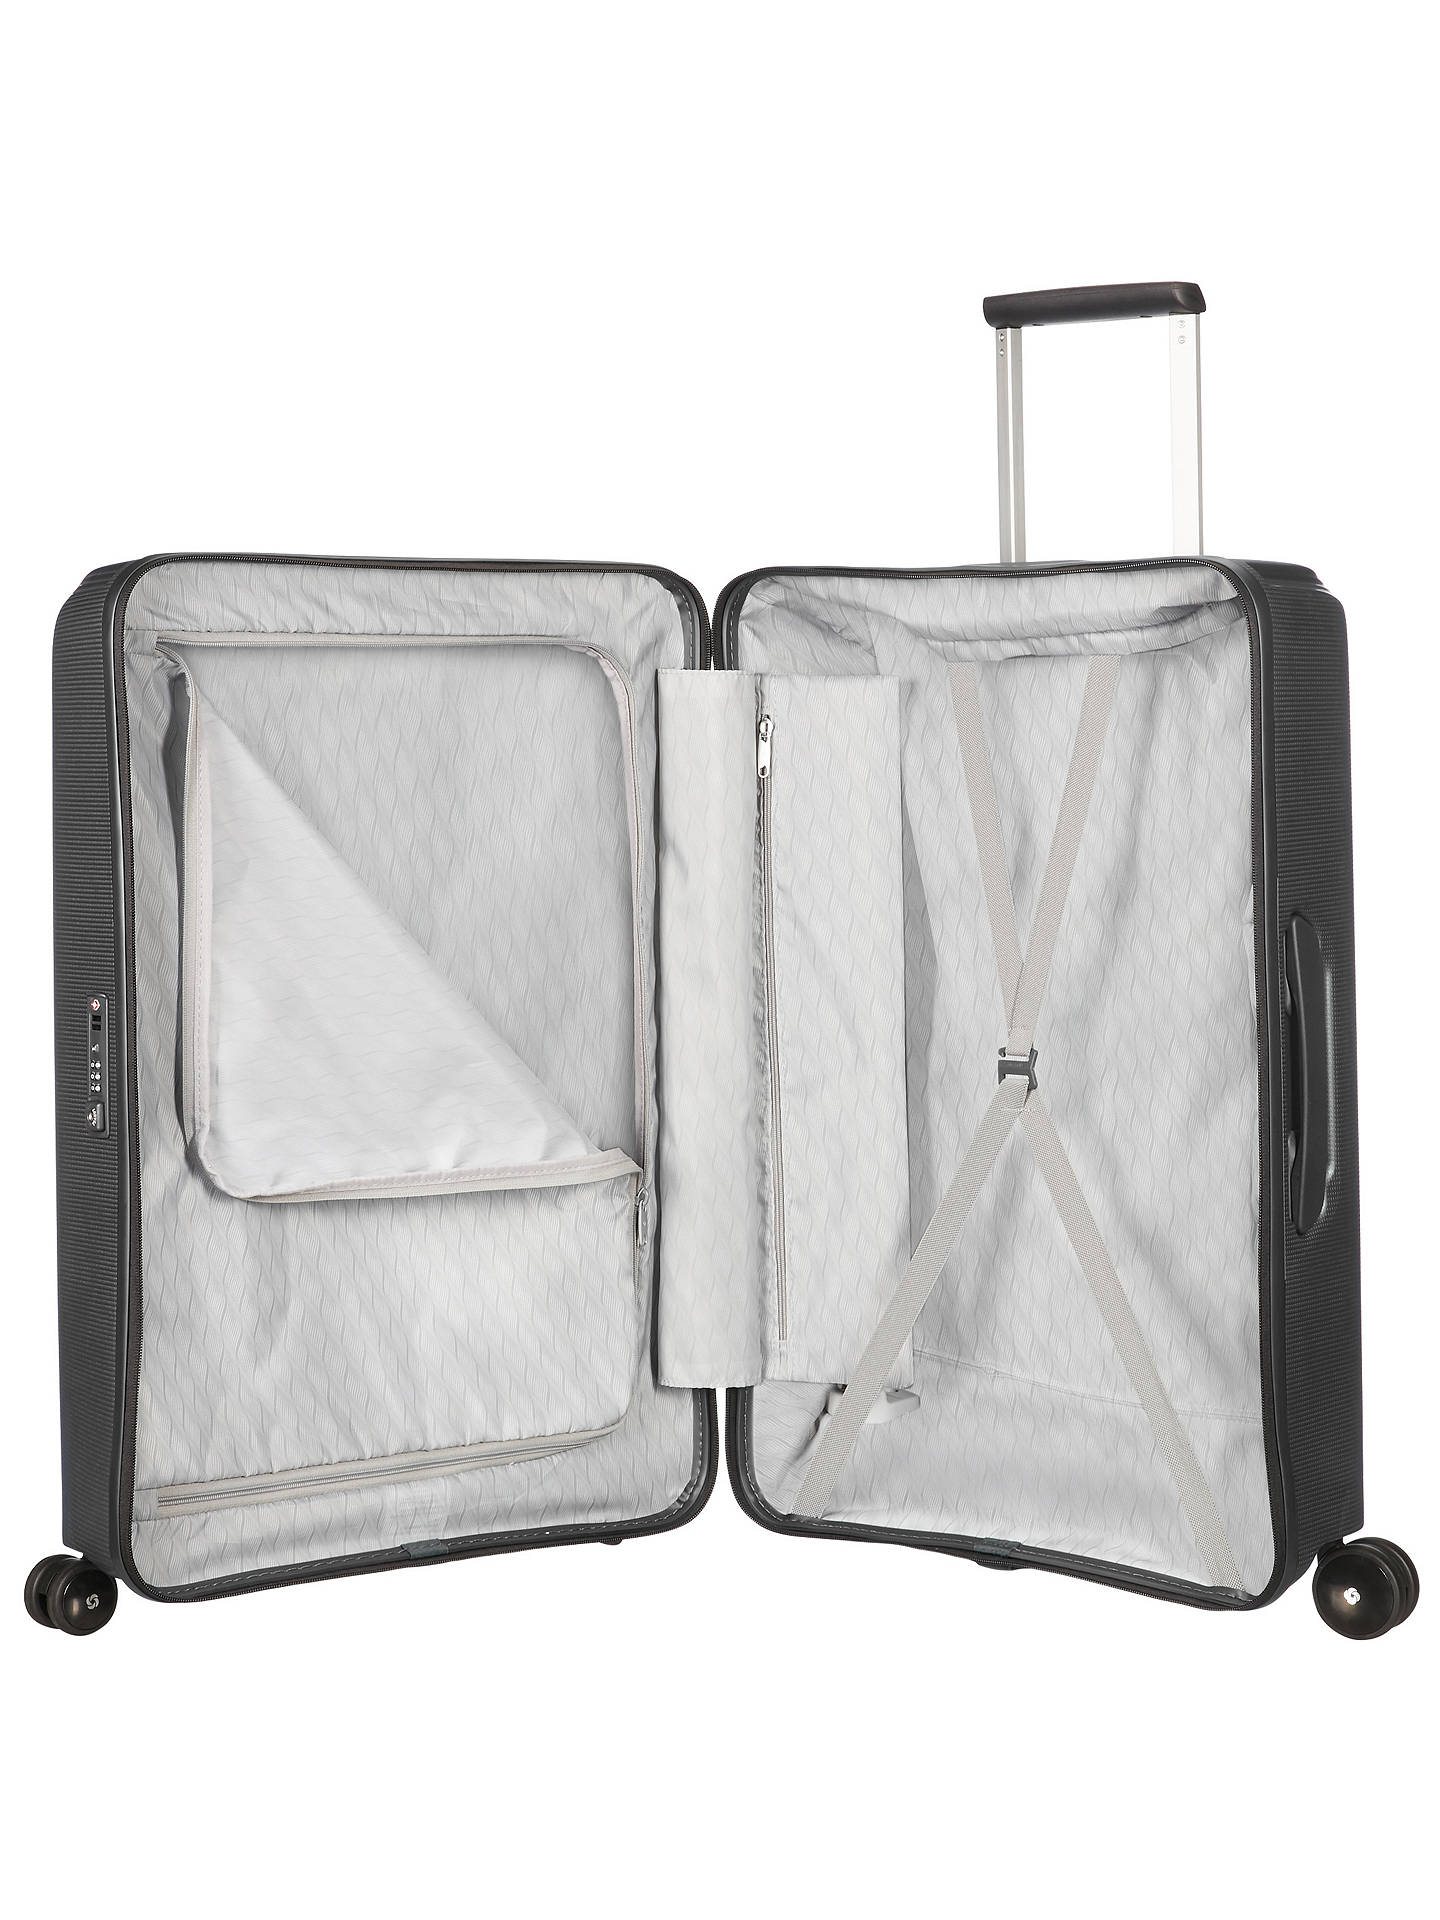 BuySamsonite Optic 69cm 4-Wheel Spinner Suitcase, Metallic Black Online at johnlewis.com